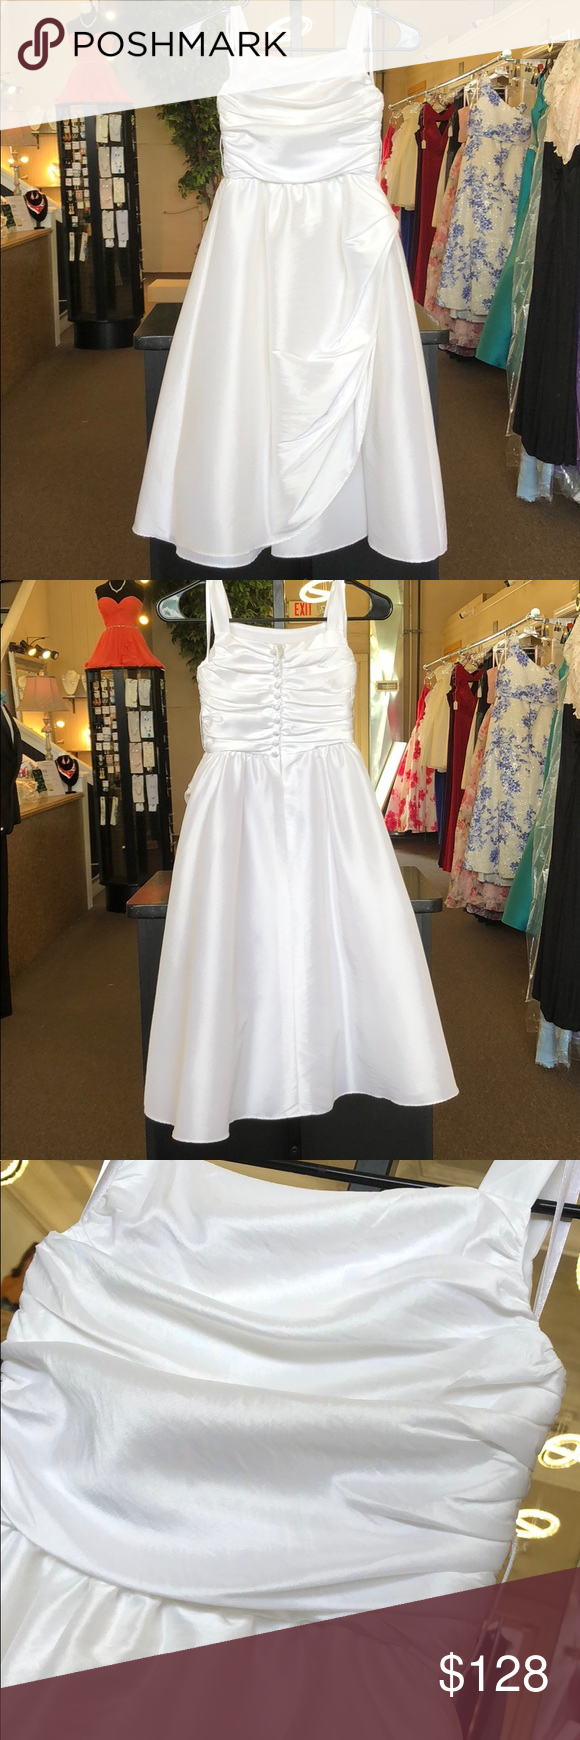 Kids white formal dress boutique in my posh closet